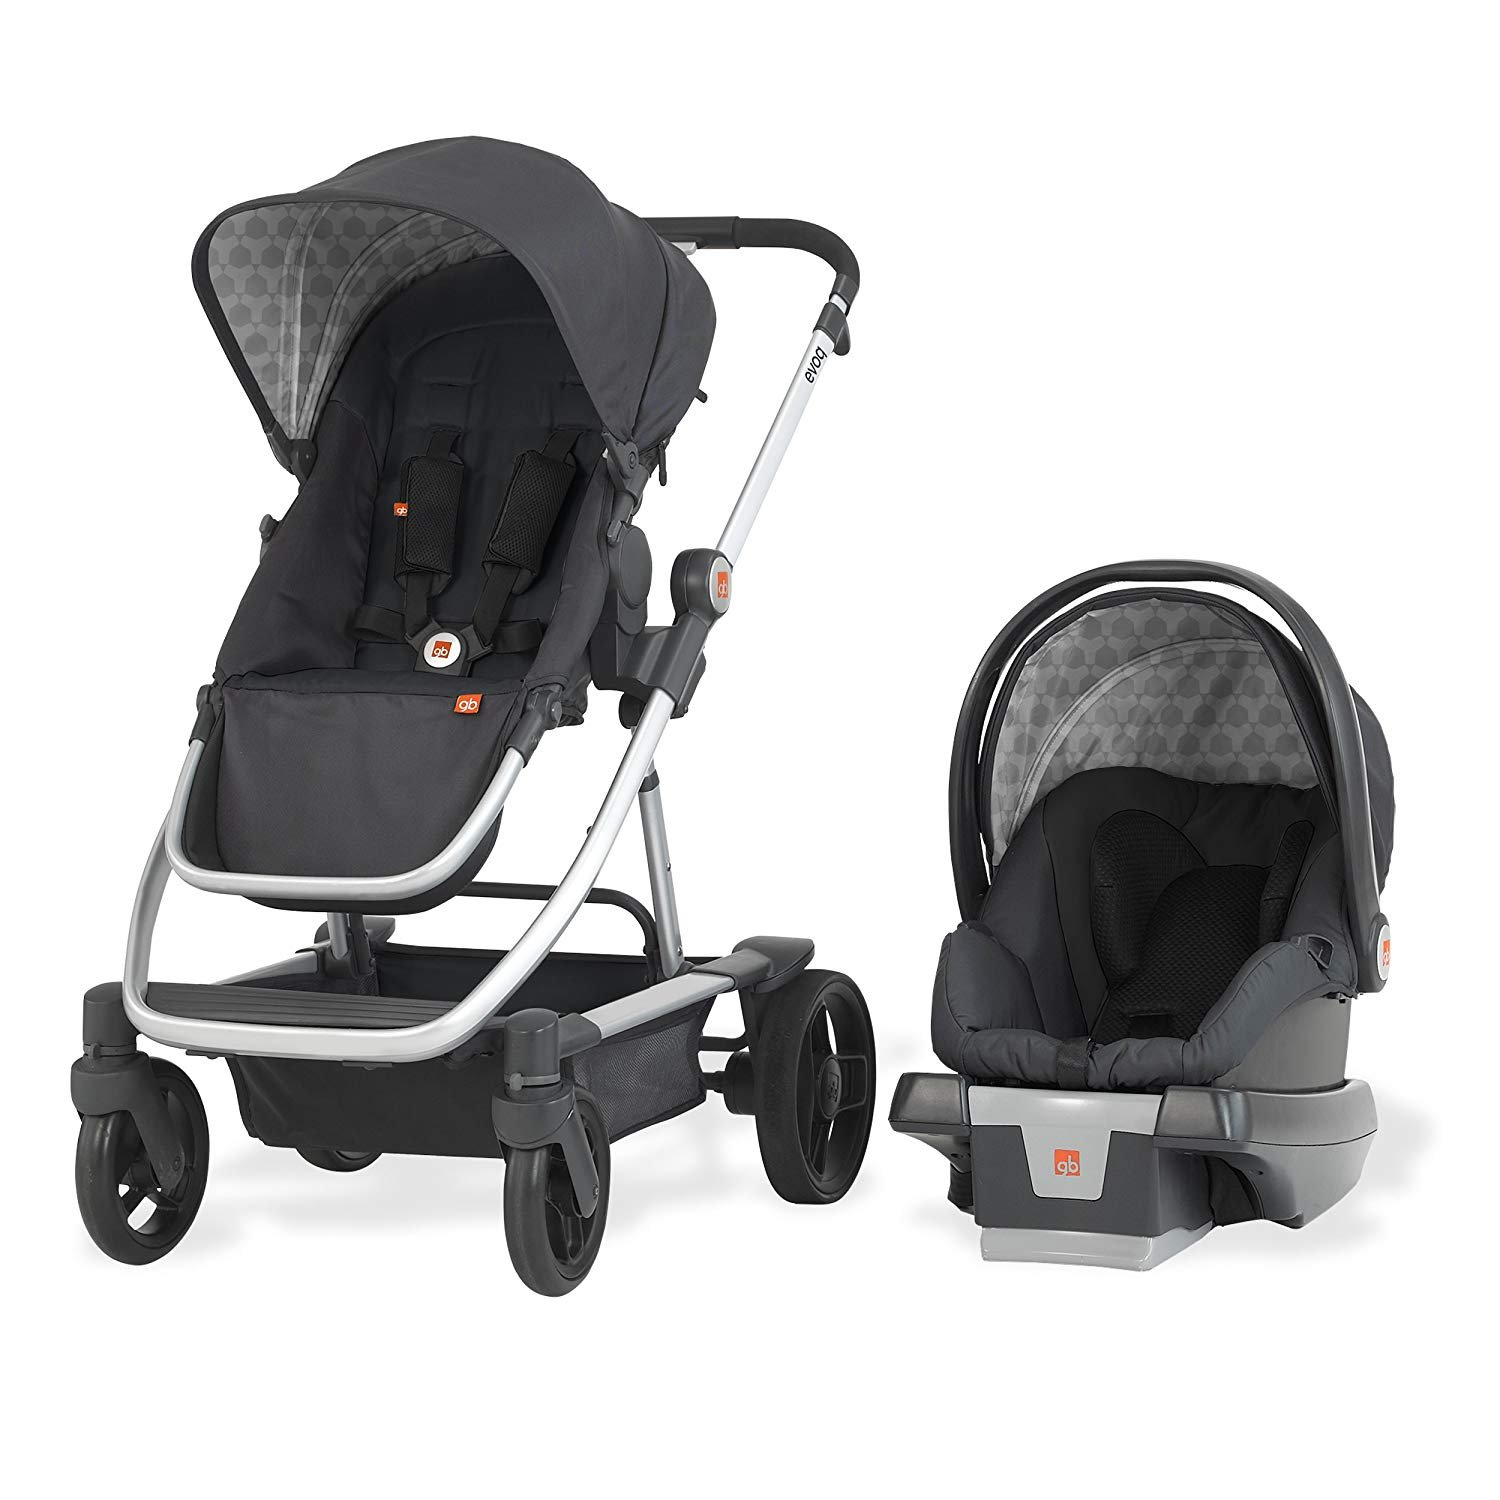 gb Evoq 4-in-1 Travel System, Charcoal